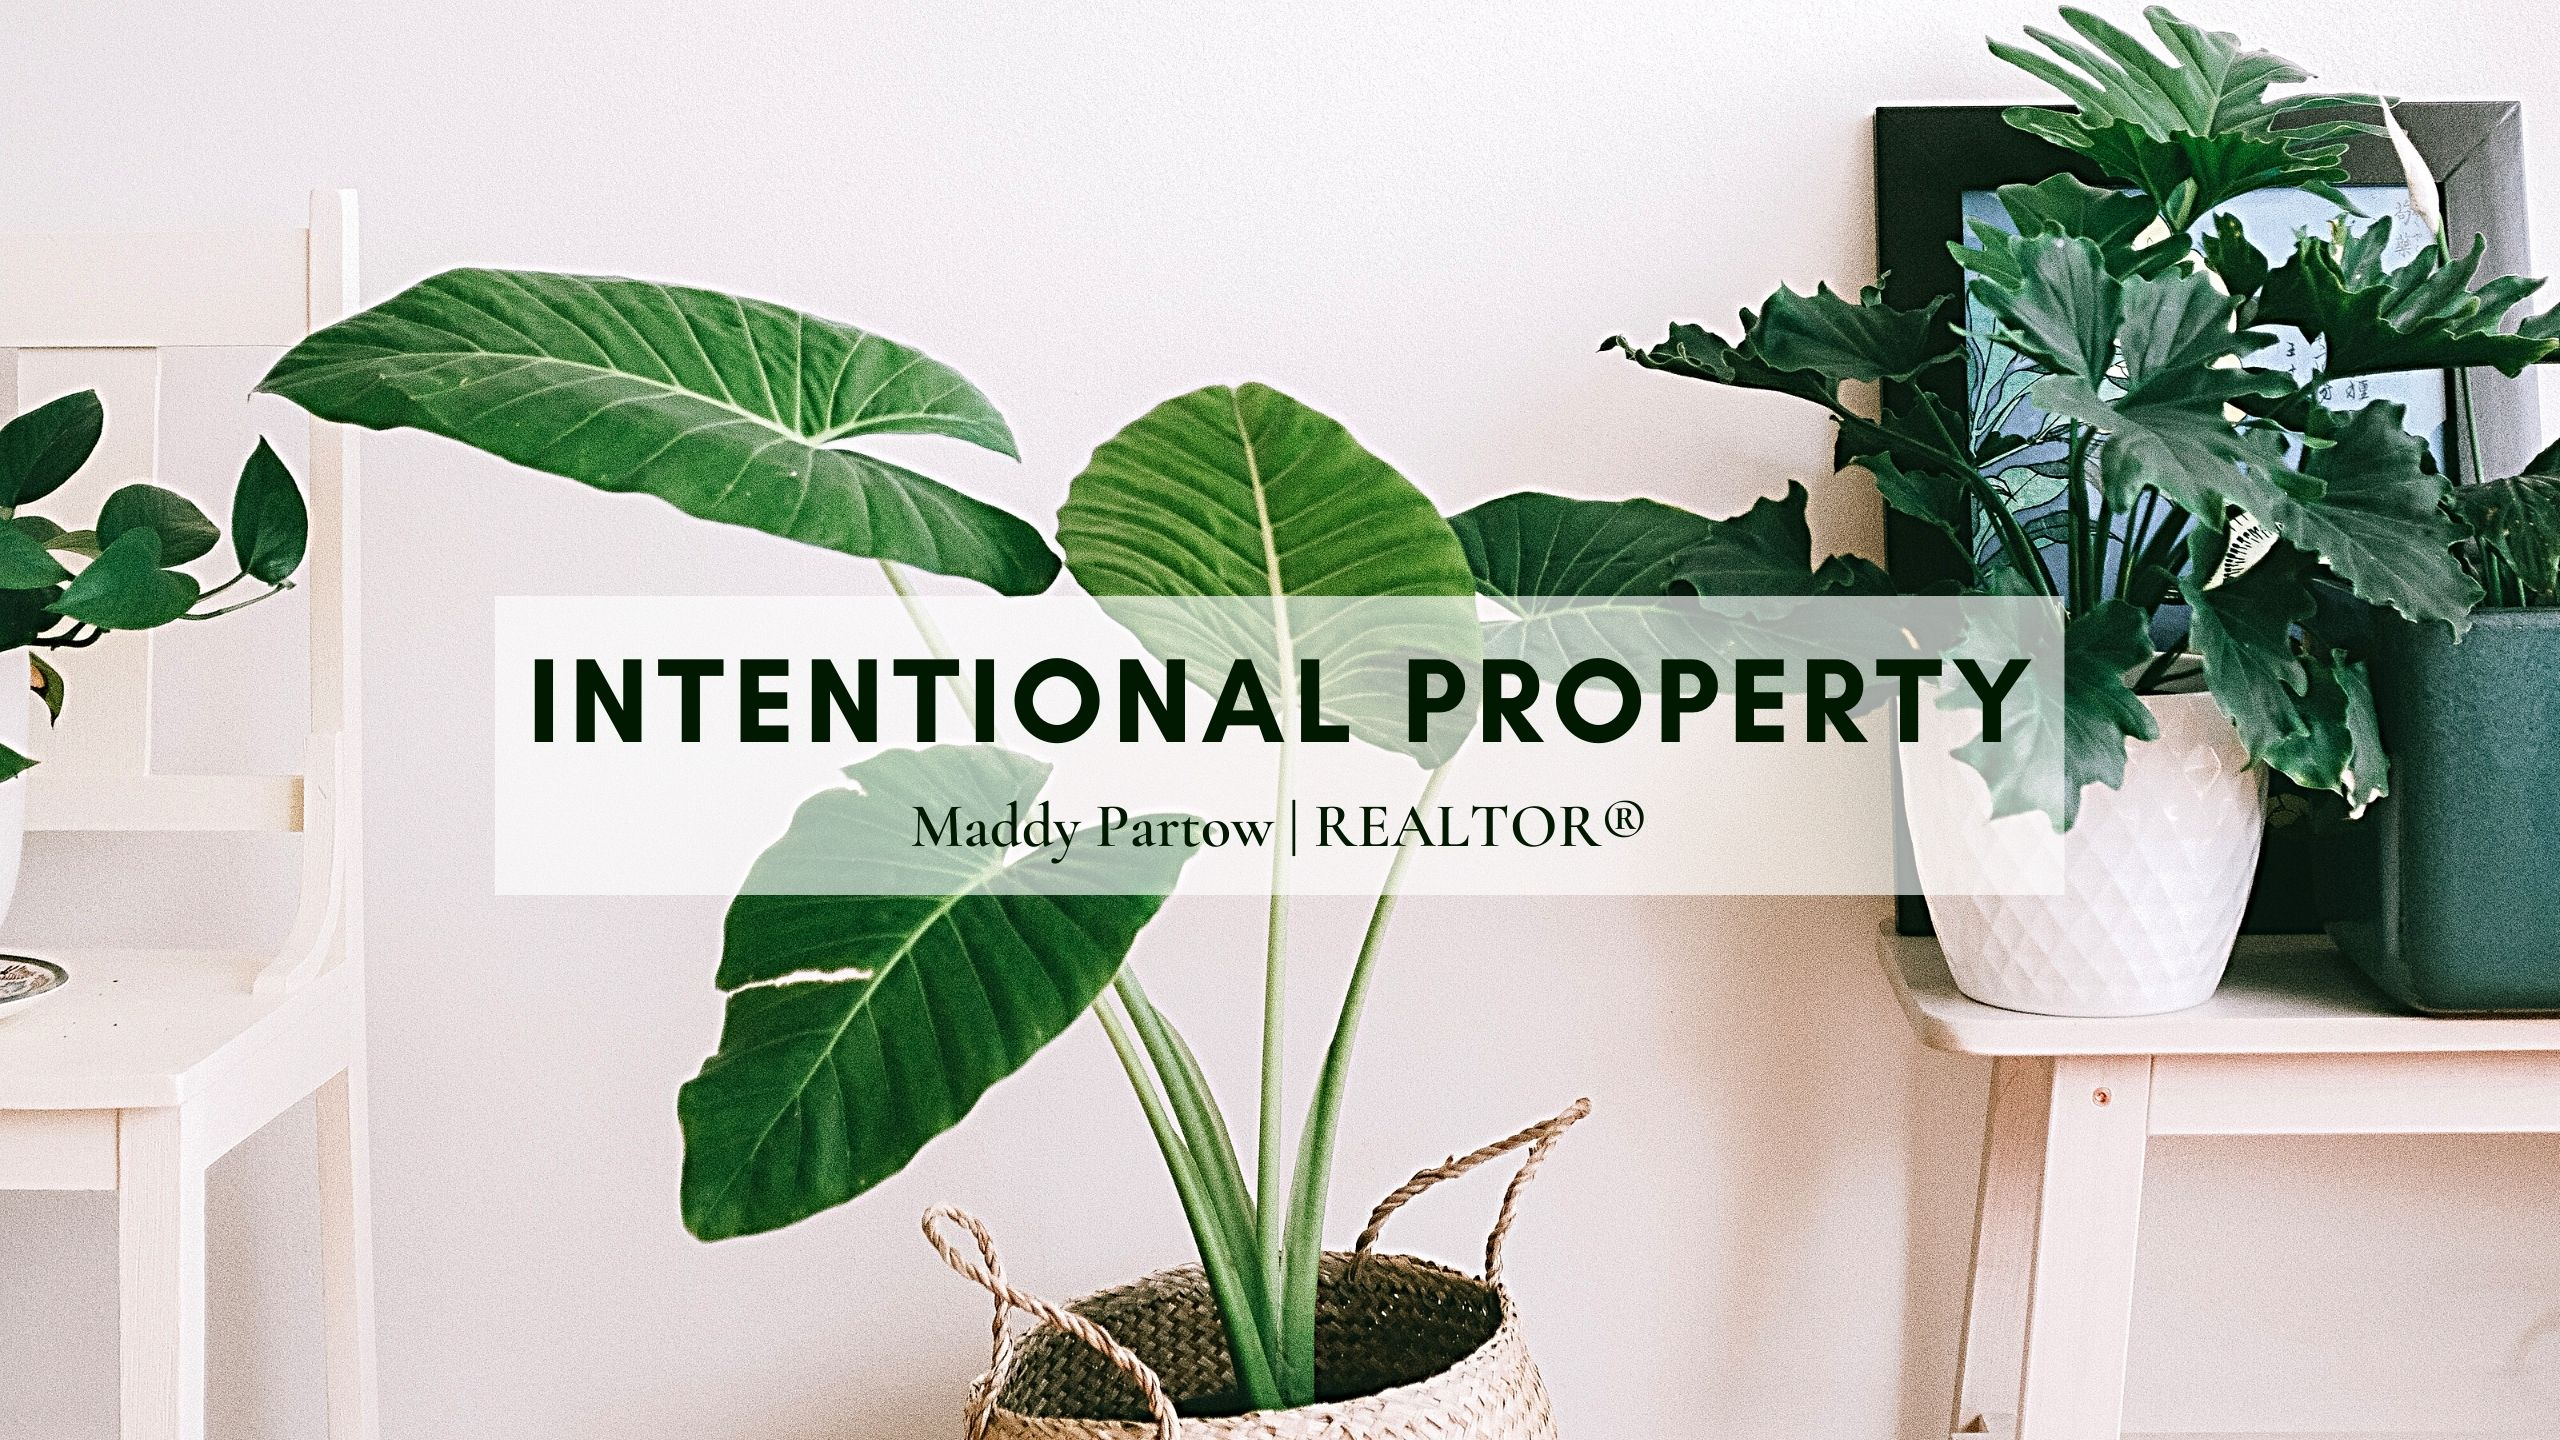 Intentional Property Brand Image